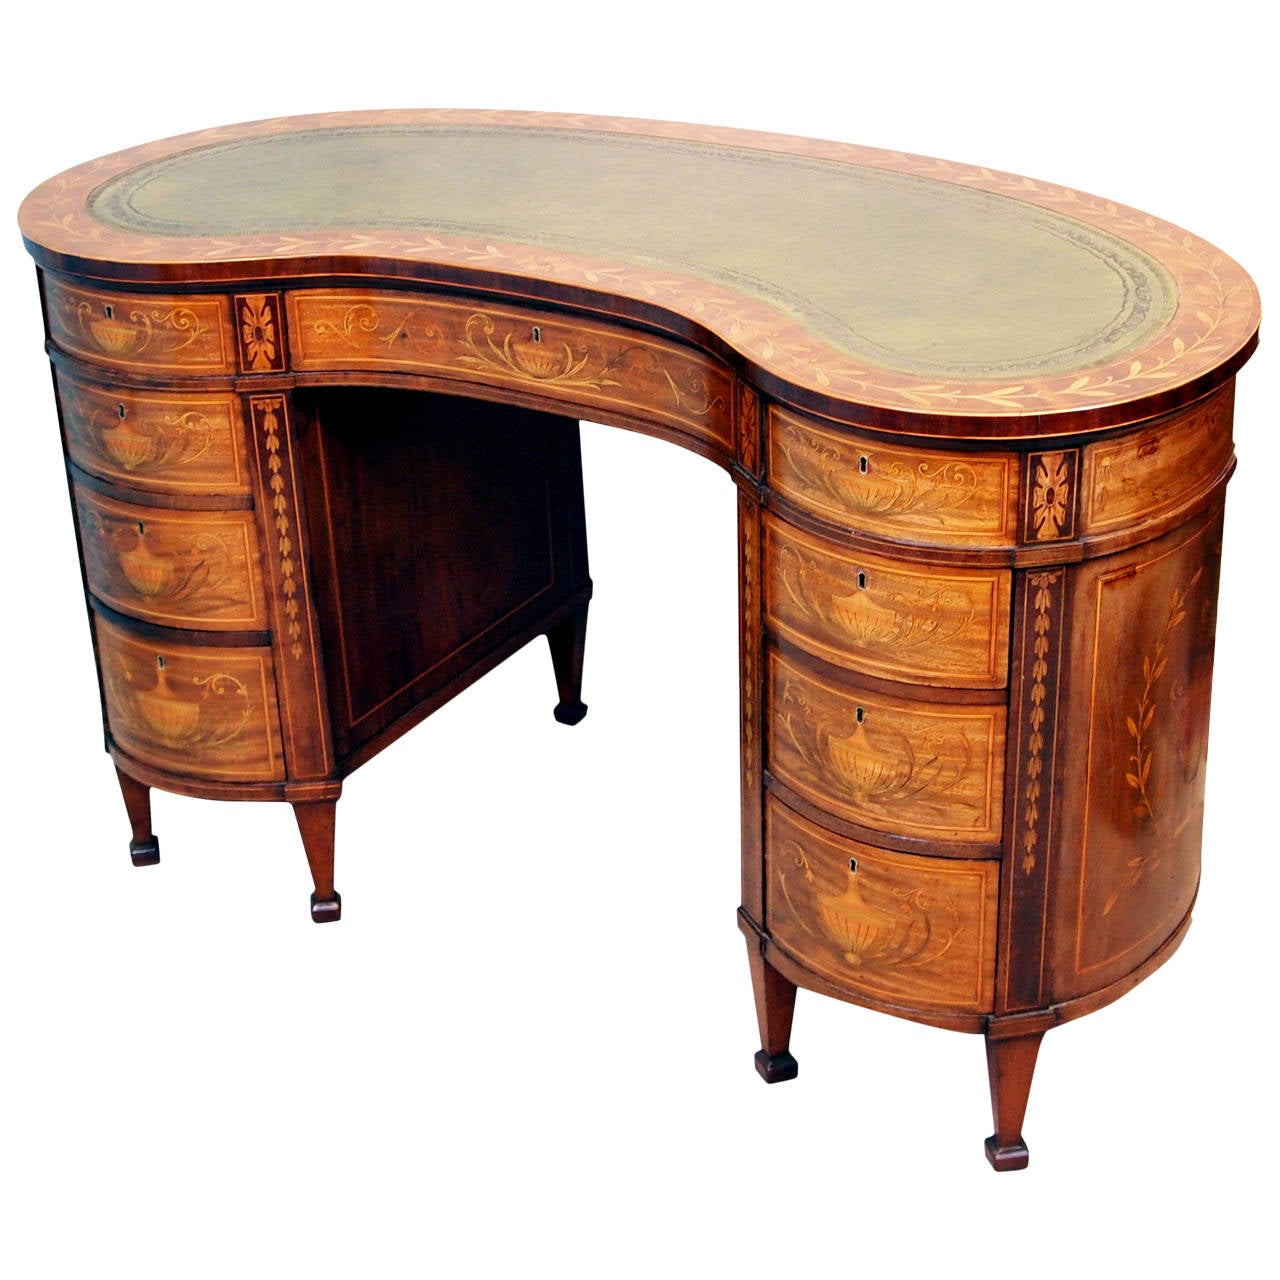 tables writing kidney vintage desk walnut shaped victorian id master f burr at style desks furniture